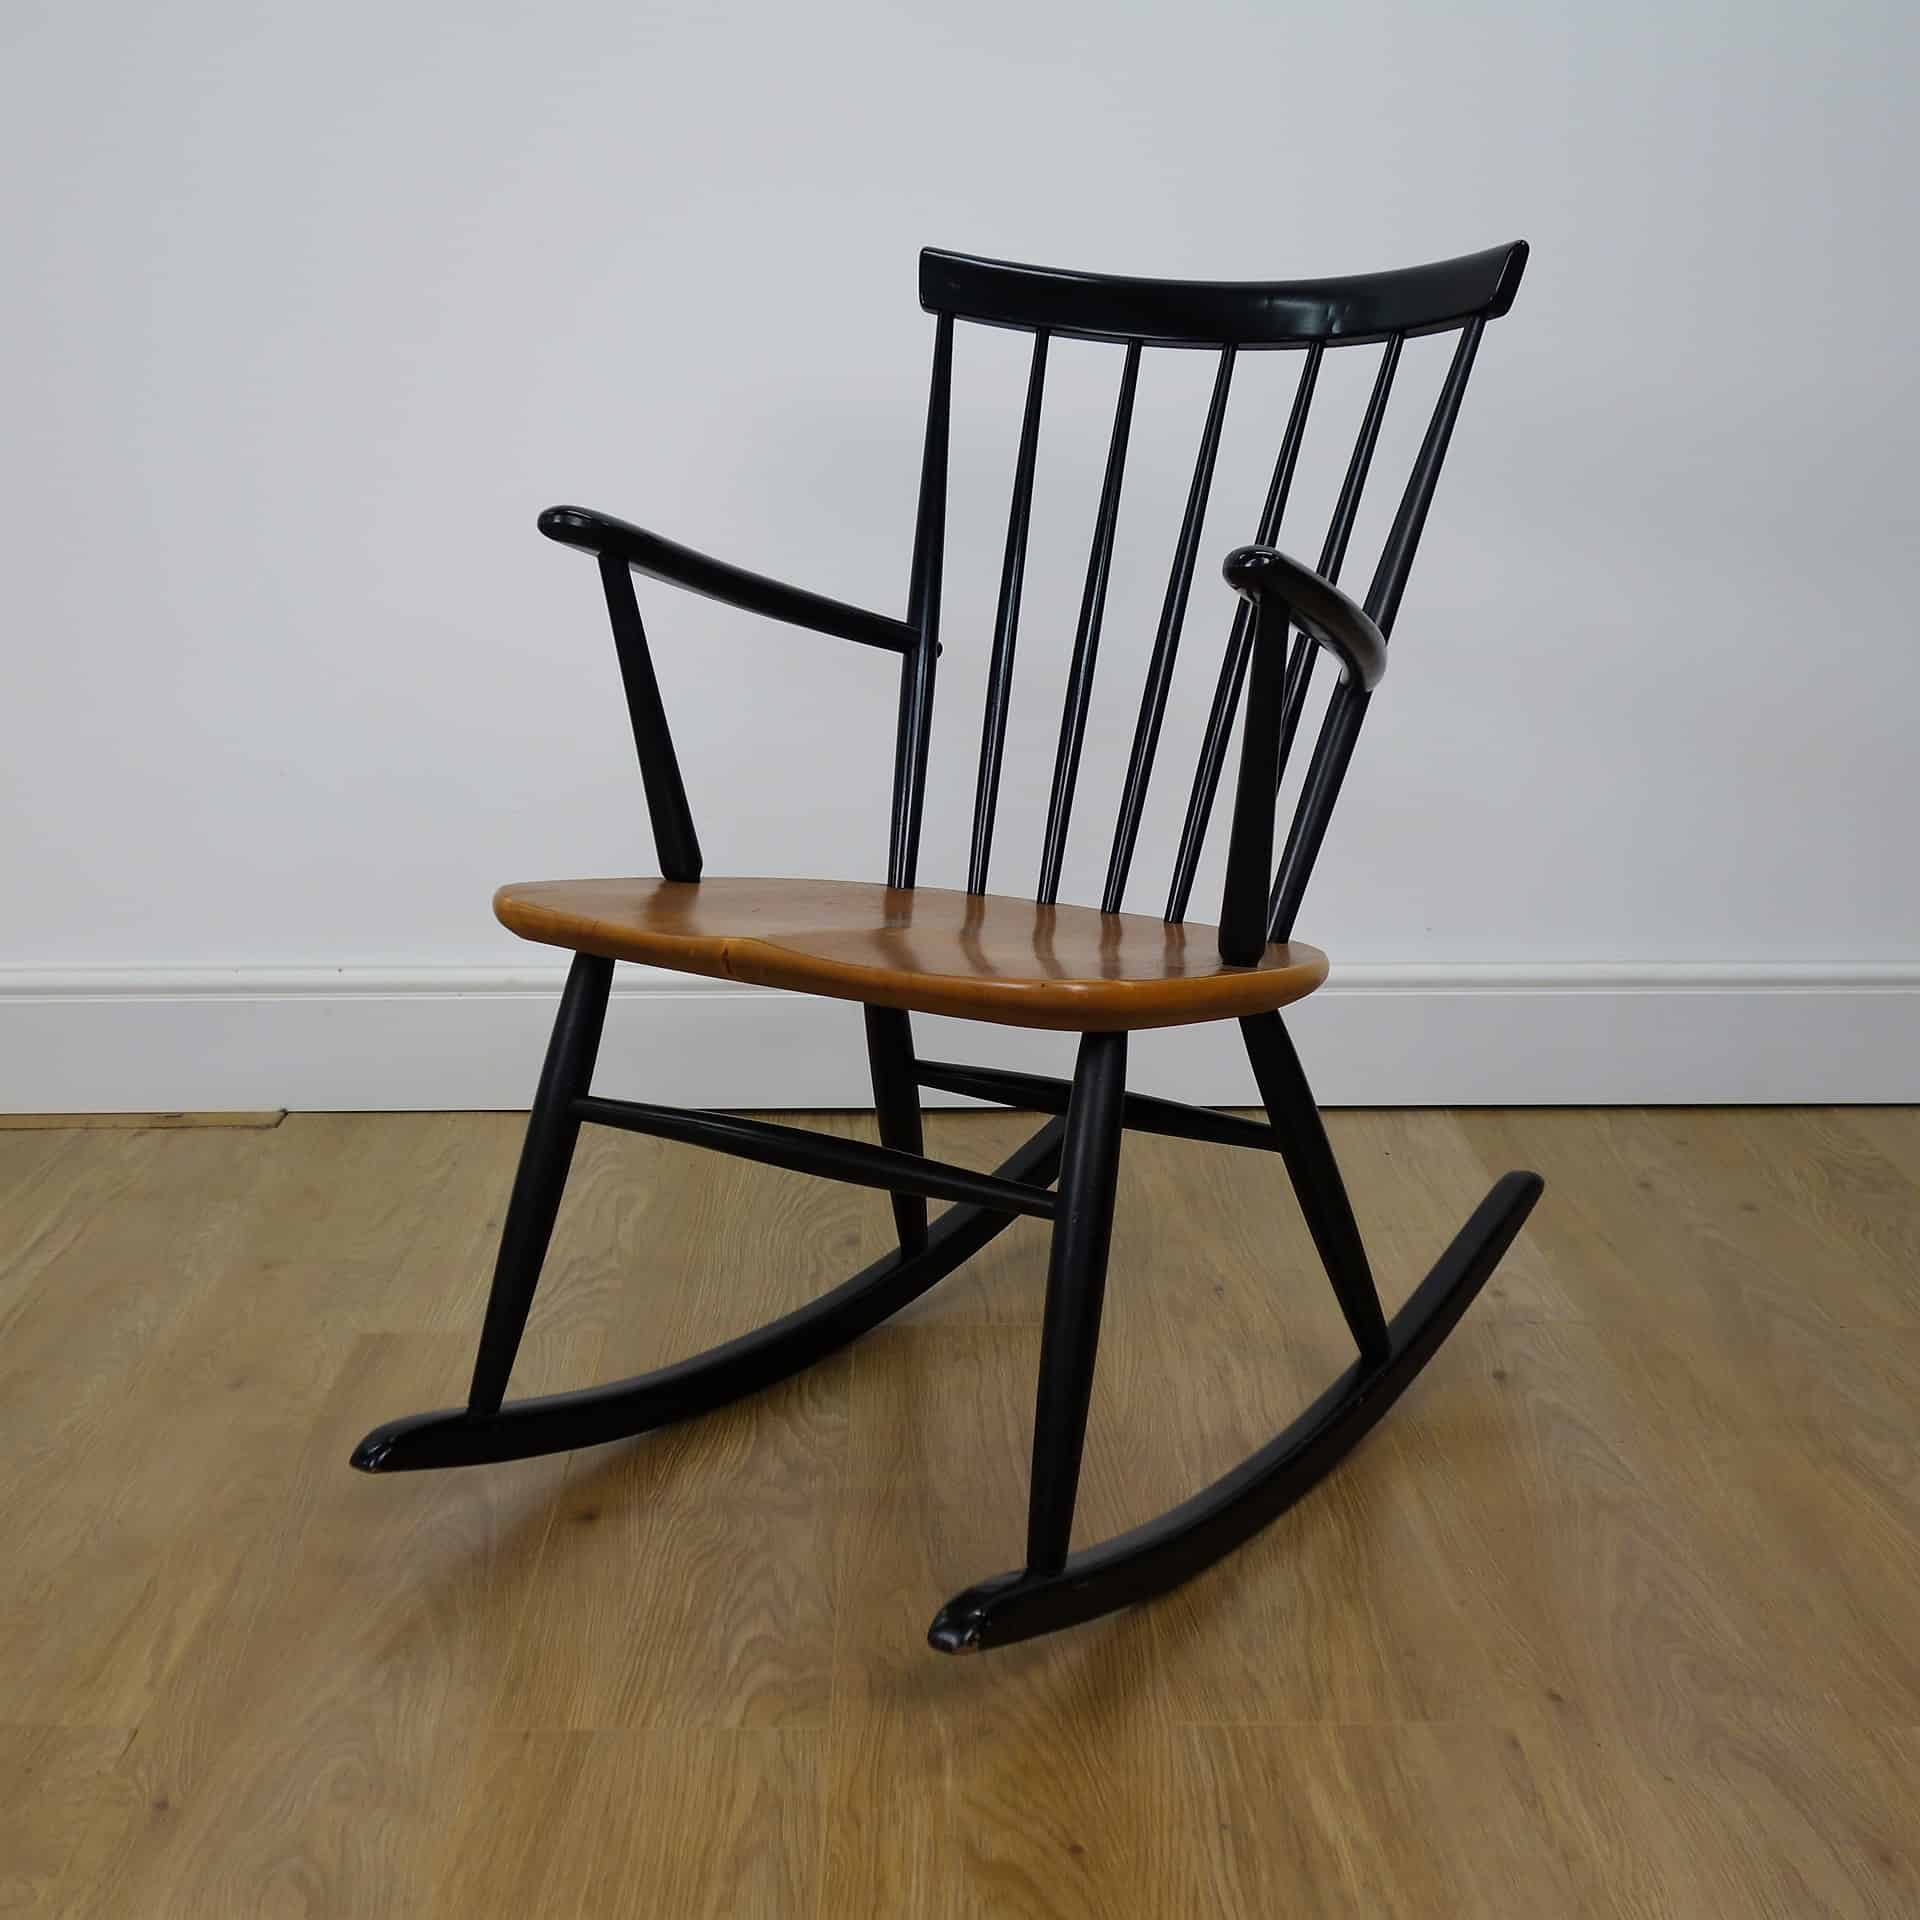 Teak and ebonised rocking chair by Hagafors Sweden